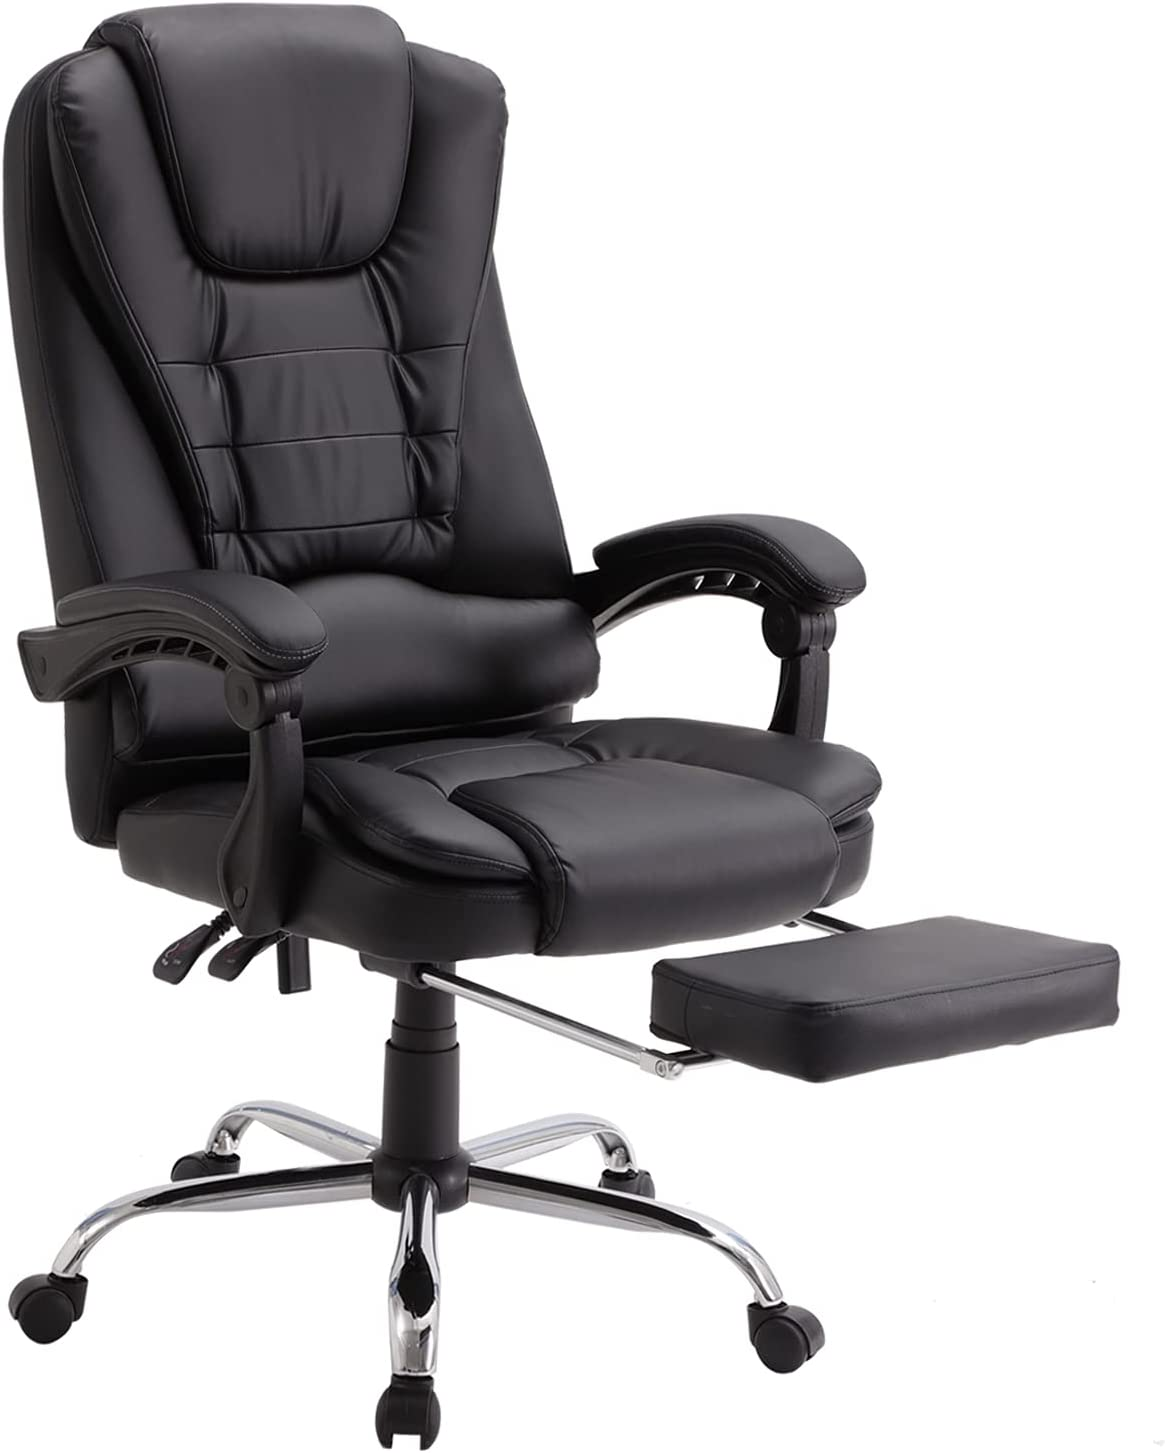 IPKIG Ergonomic Executive Office with Kansas City Mall Retractable Footrest Tucson Mall Chair